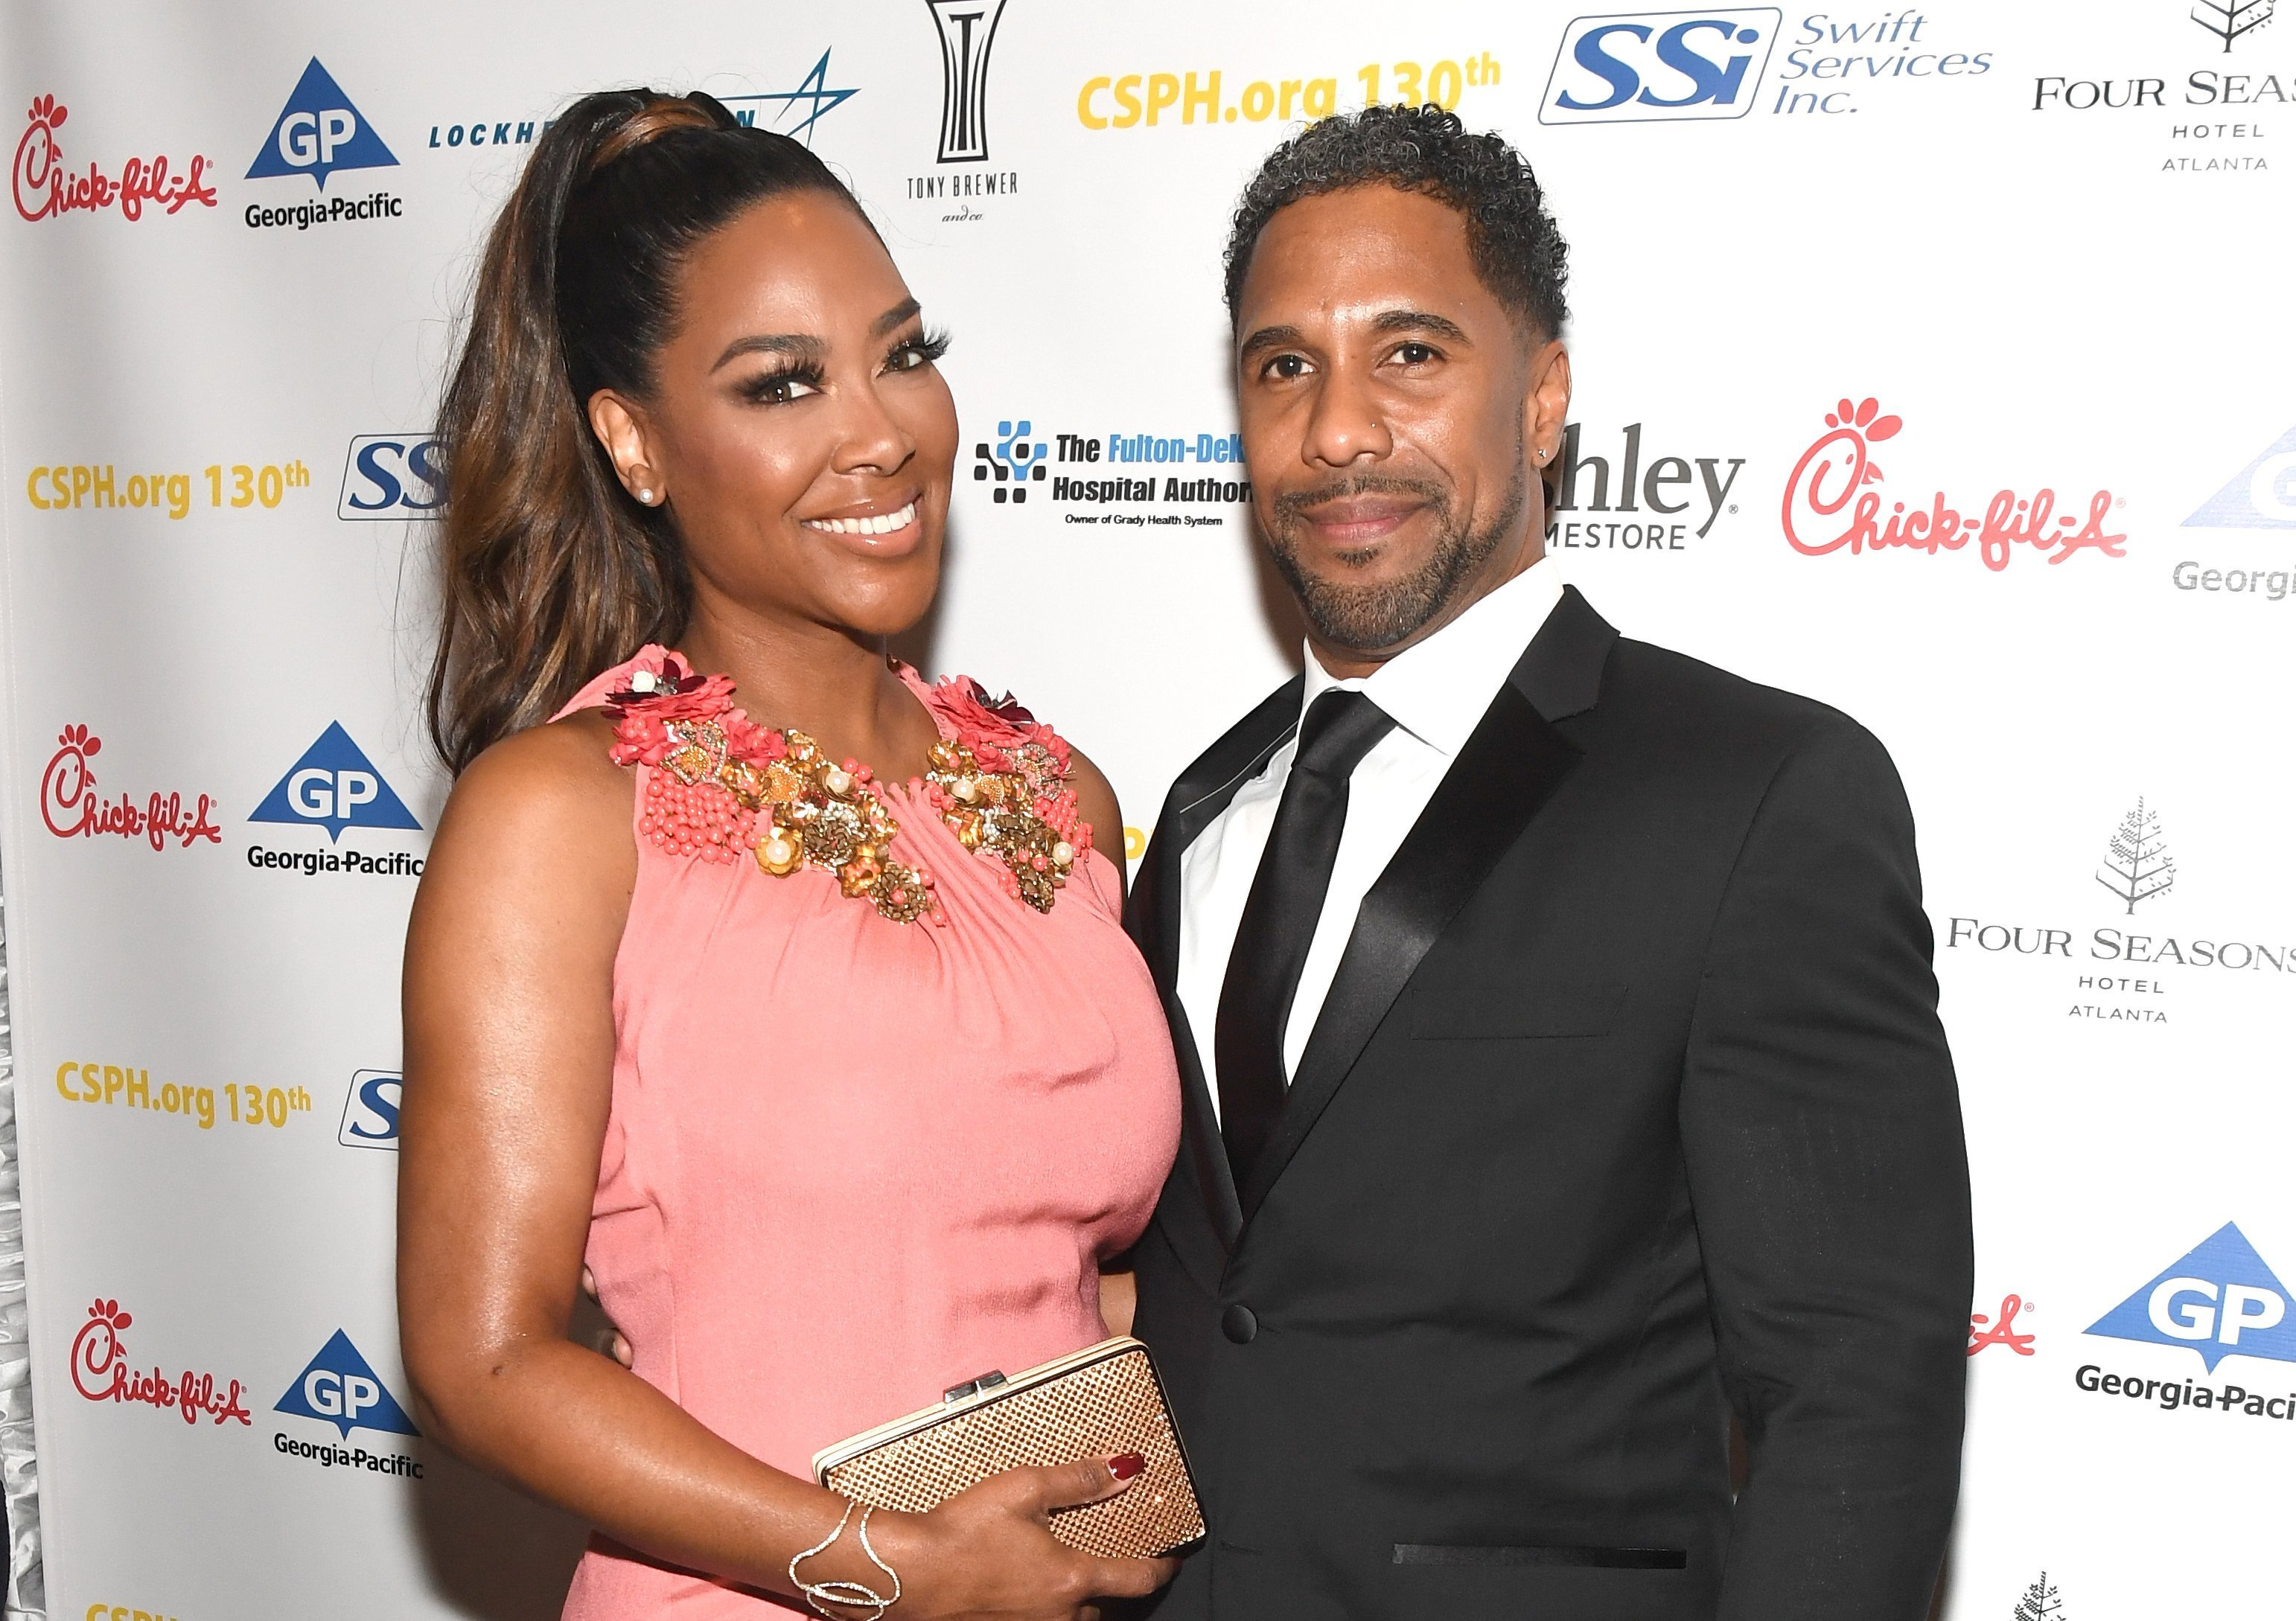 Kenya Moore & Marc Daly at Carrie Steele-Pitts Home 130th Anniversary Gala on Mar. 24, 2018 in Atlanta, Georgia | Photo: Getty Images/GlobalImagesUkraine